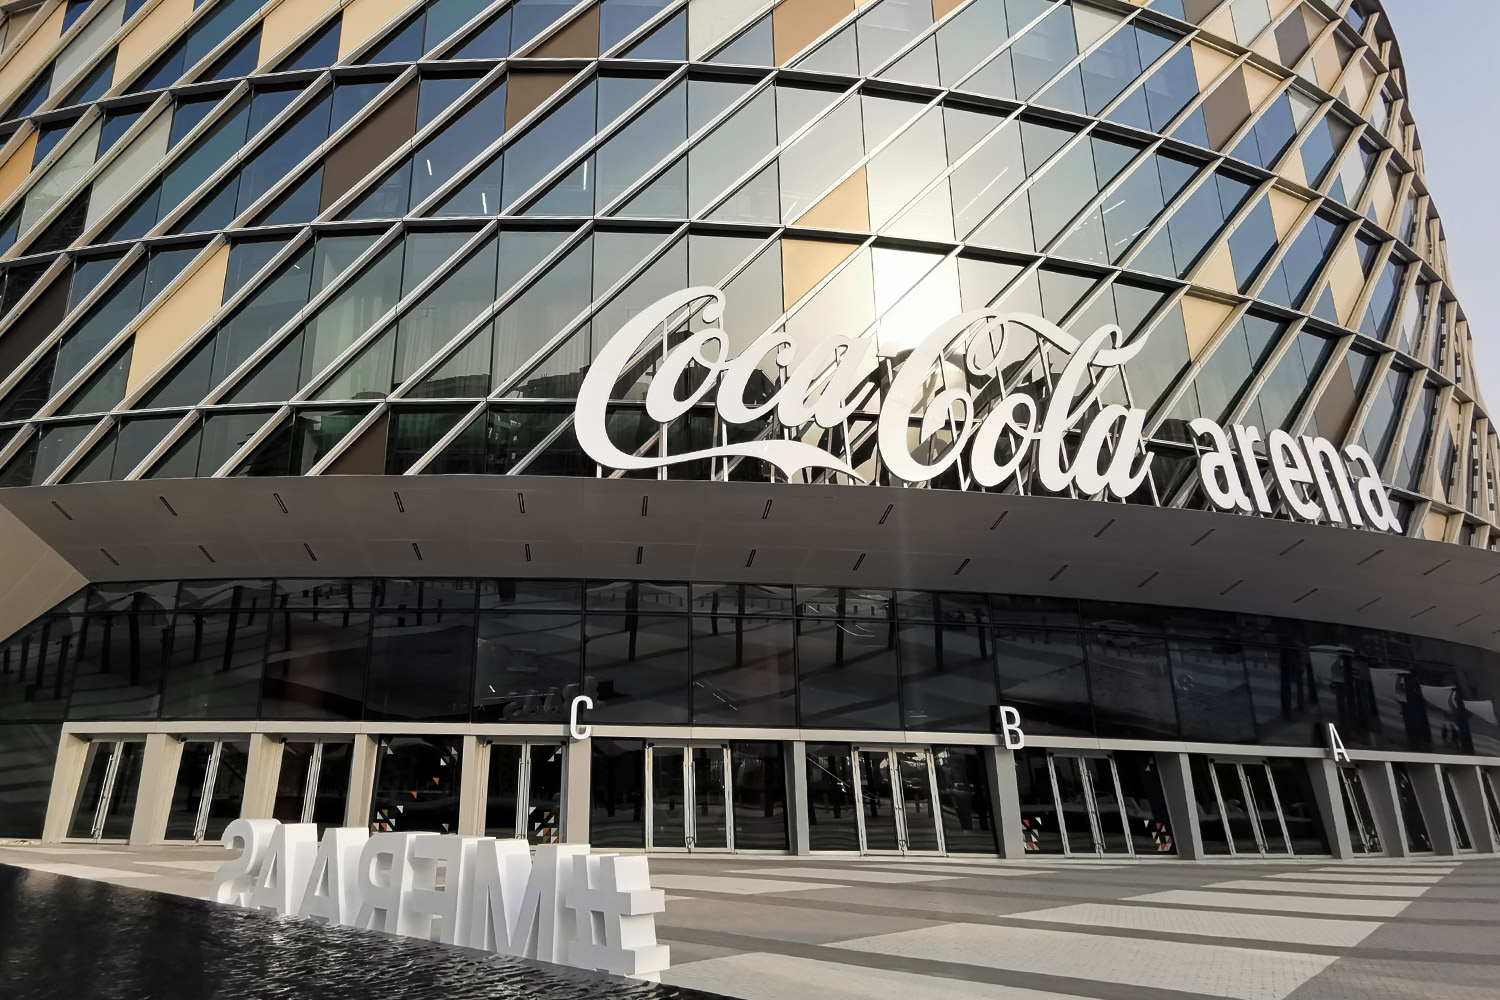 Front view of the Dubai coca cola arena